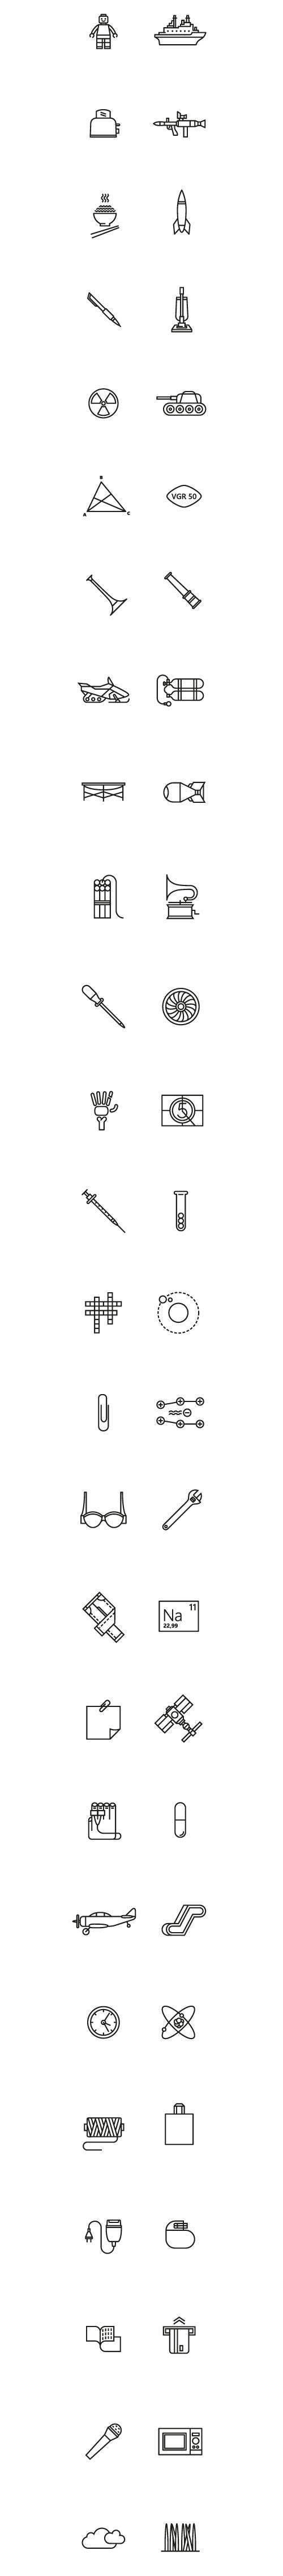 Pictograms for Esquire by Ooli Mos, via Behance